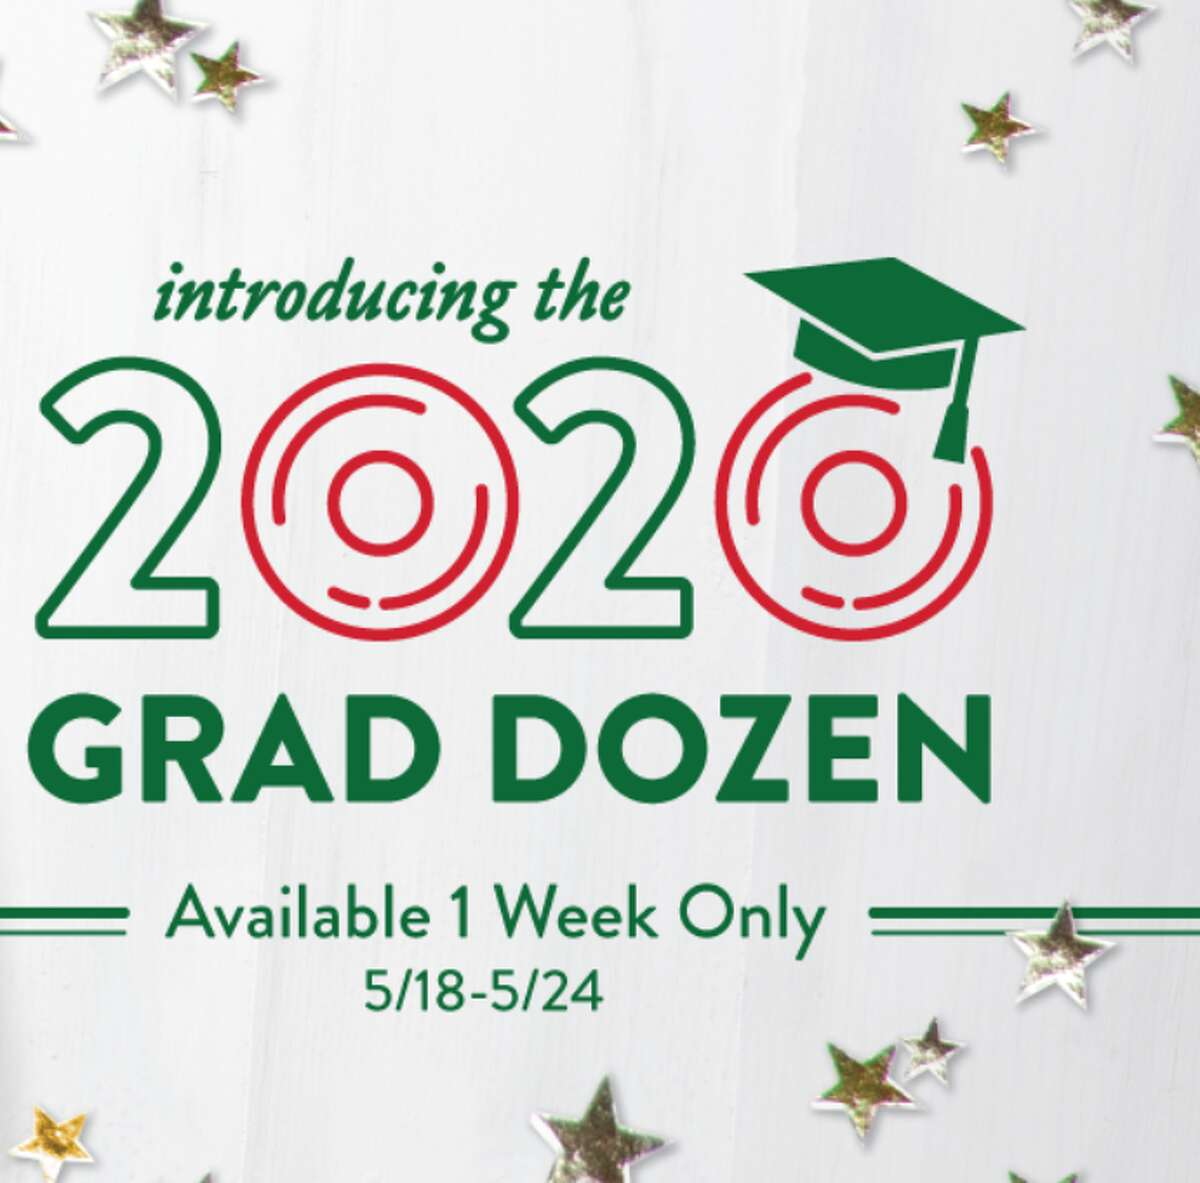 A new 2020 Graduate Dozen will be available for purchase the week of 5/18-5/24.  To sweeten the deal